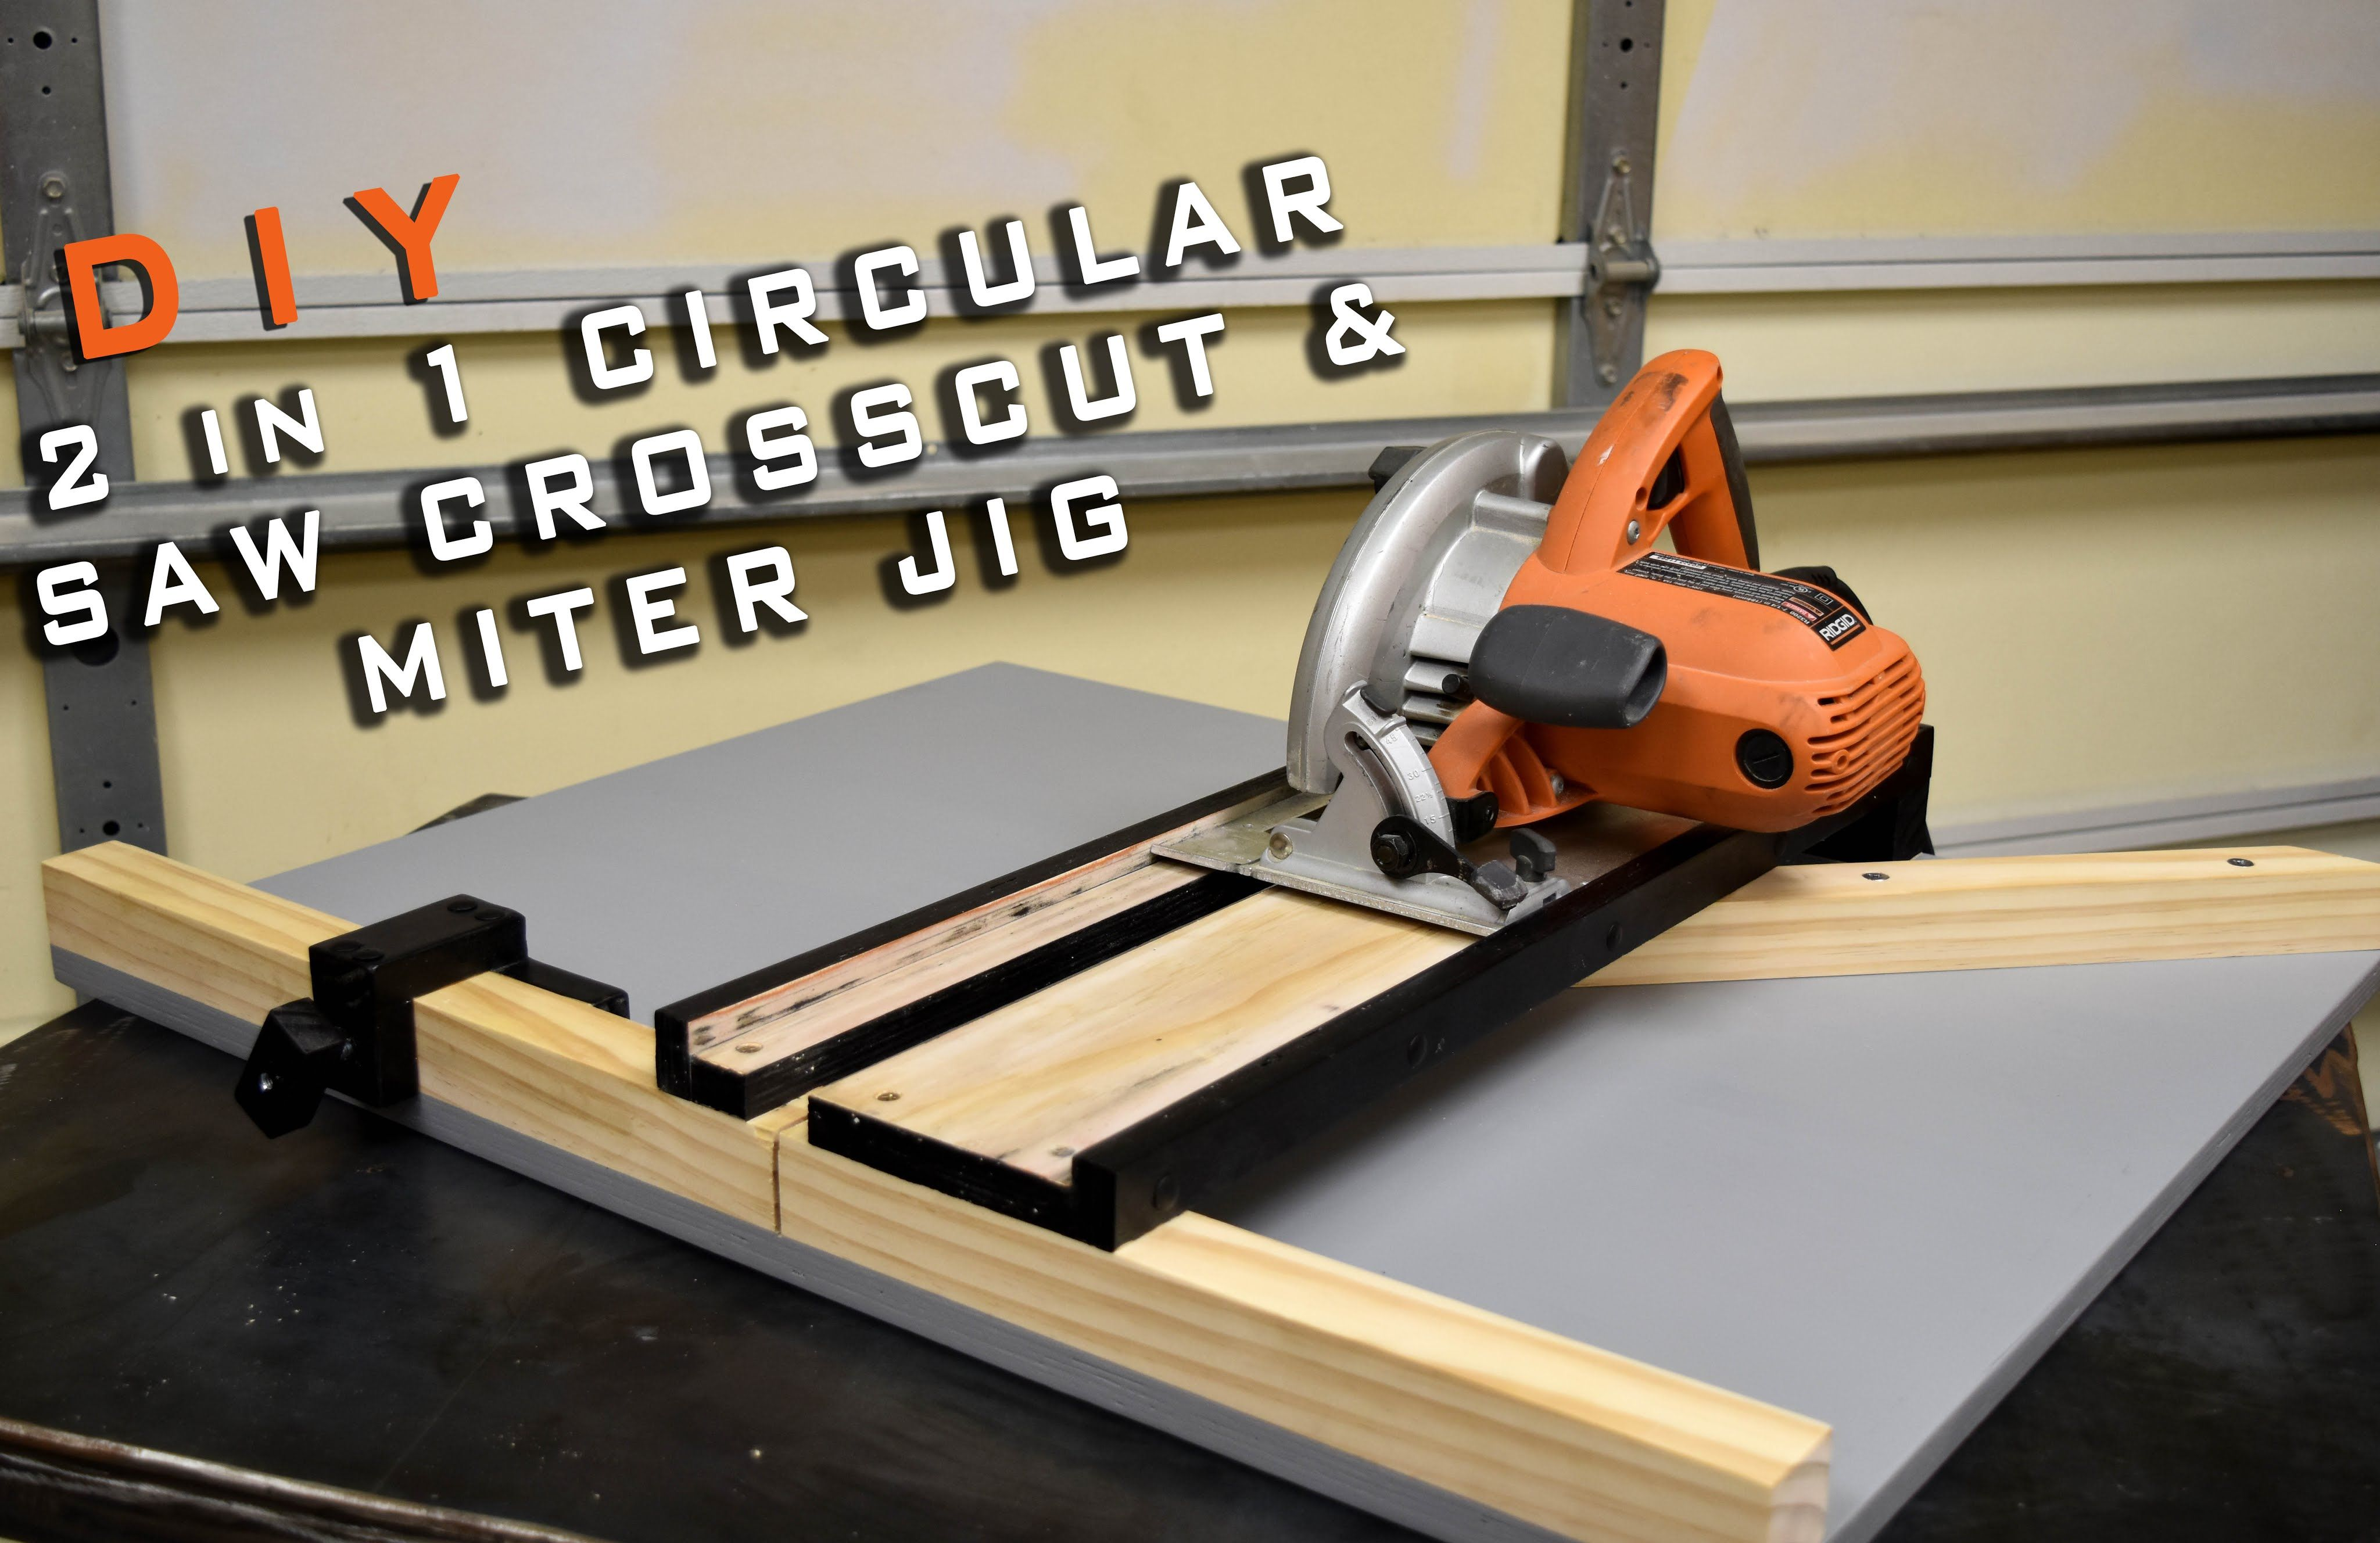 2 In 1 Circular Saw Crosscut Miter Jig Limited Tools Episode 003